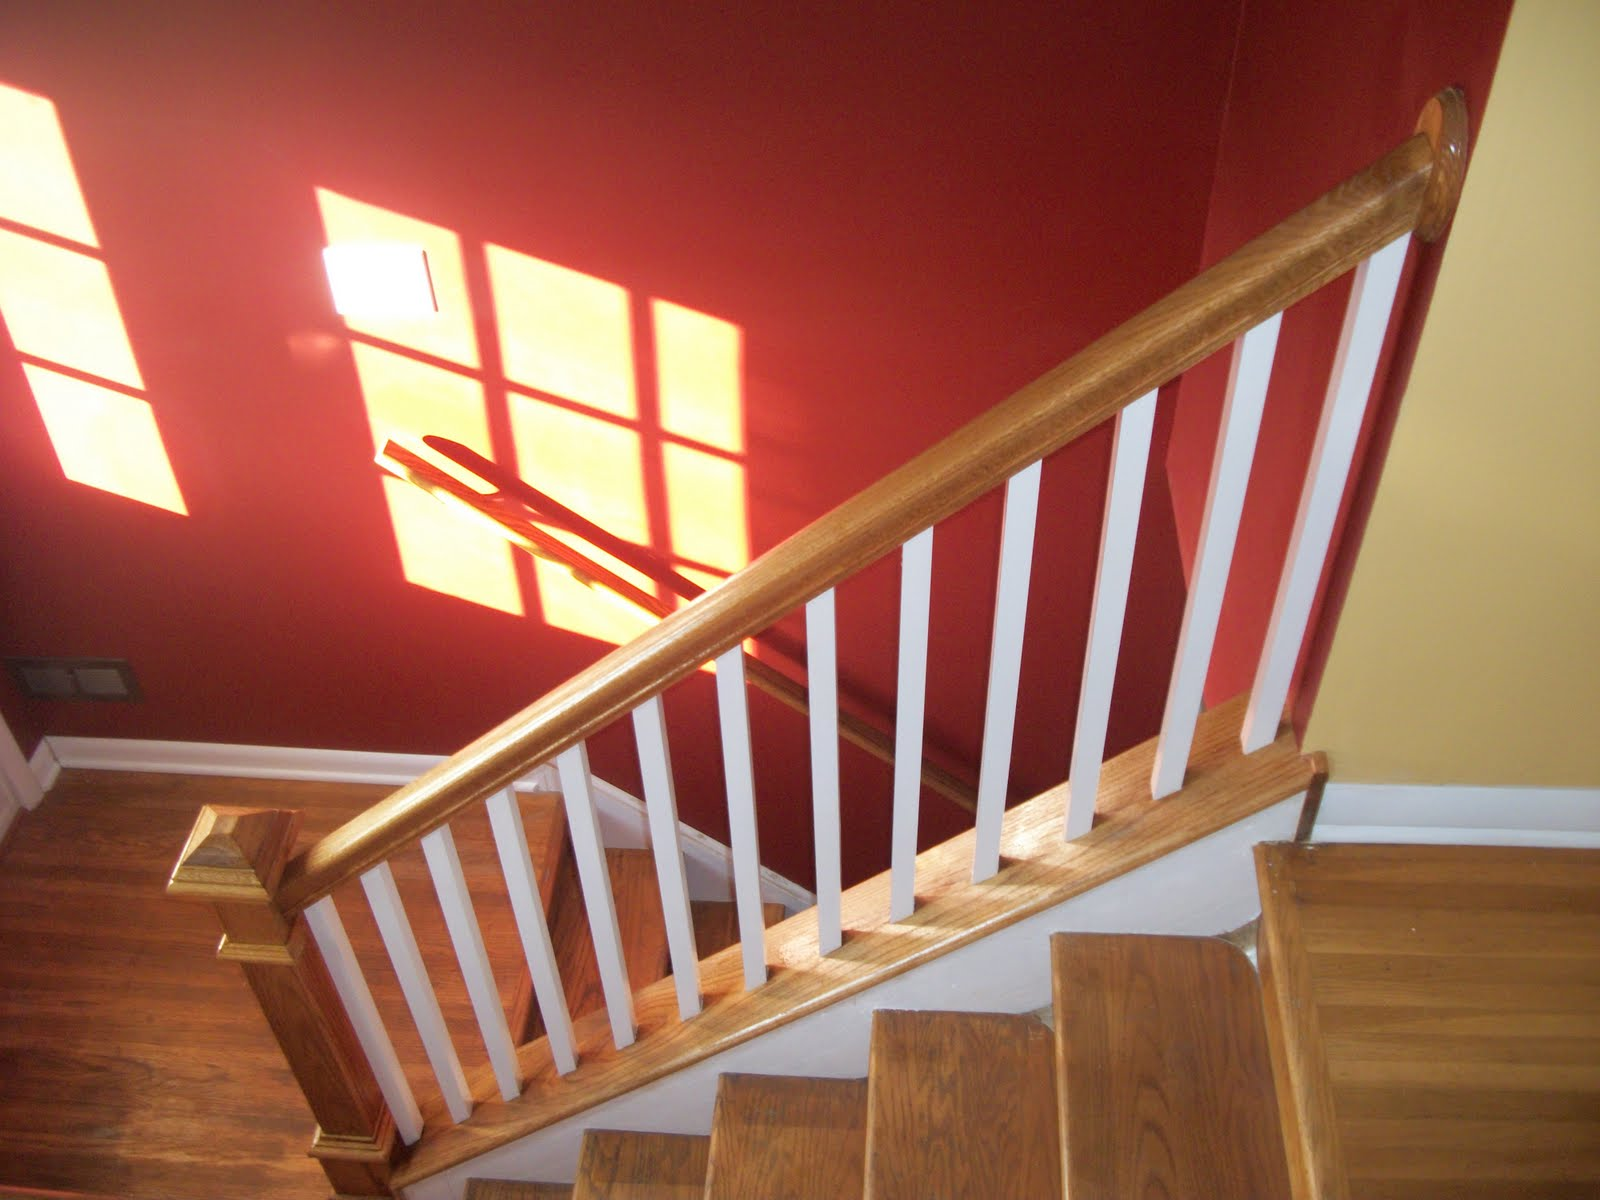 Complete Home Remodeling And Construction 856 956 6425   Indoor Railings For Steps